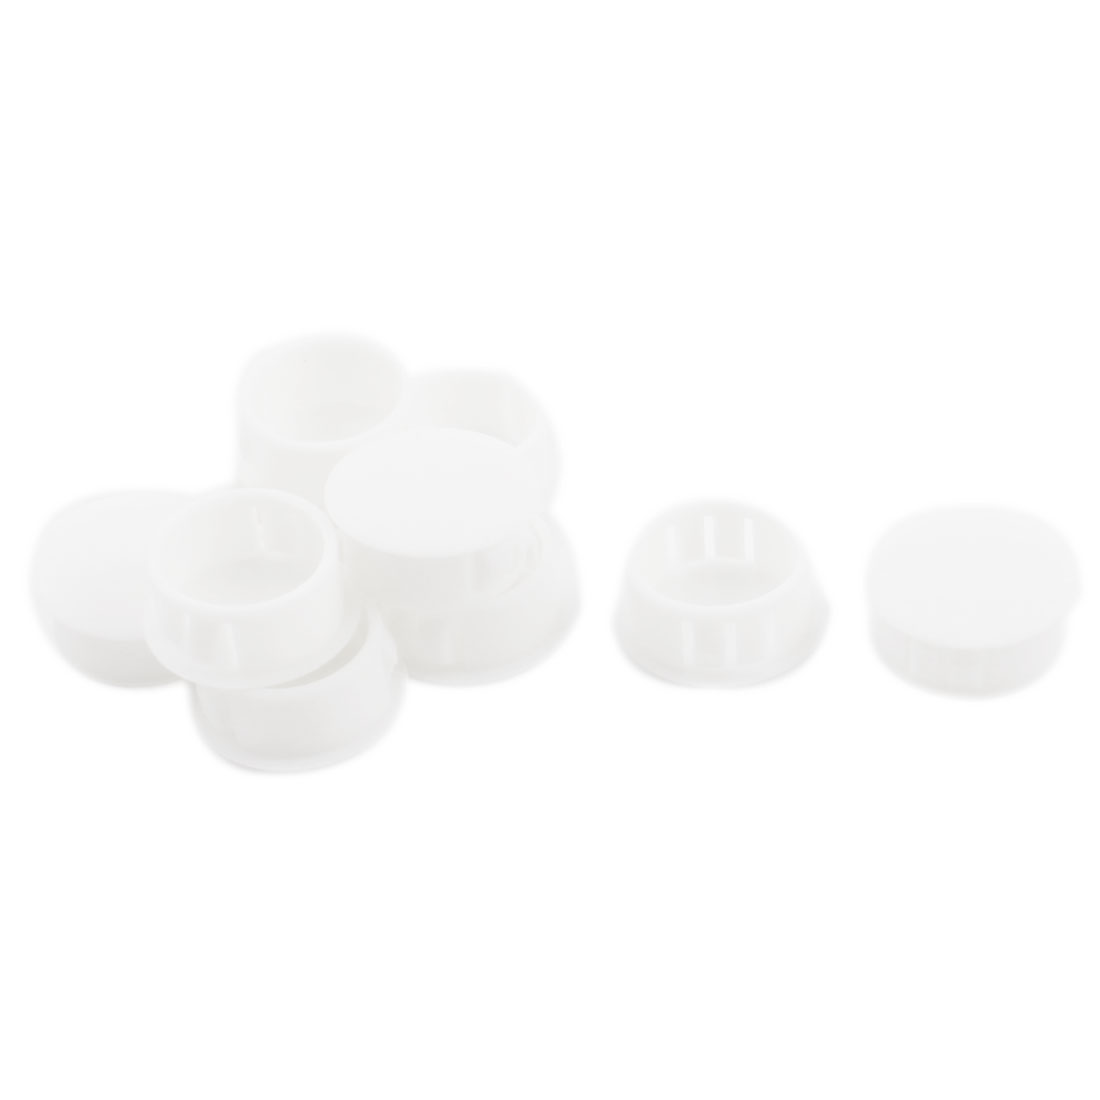 10Pcs SKT-22 Insulated White Plastic Snap in Mount Blank Locking Hole Cover Harness Fastener 22.1mm